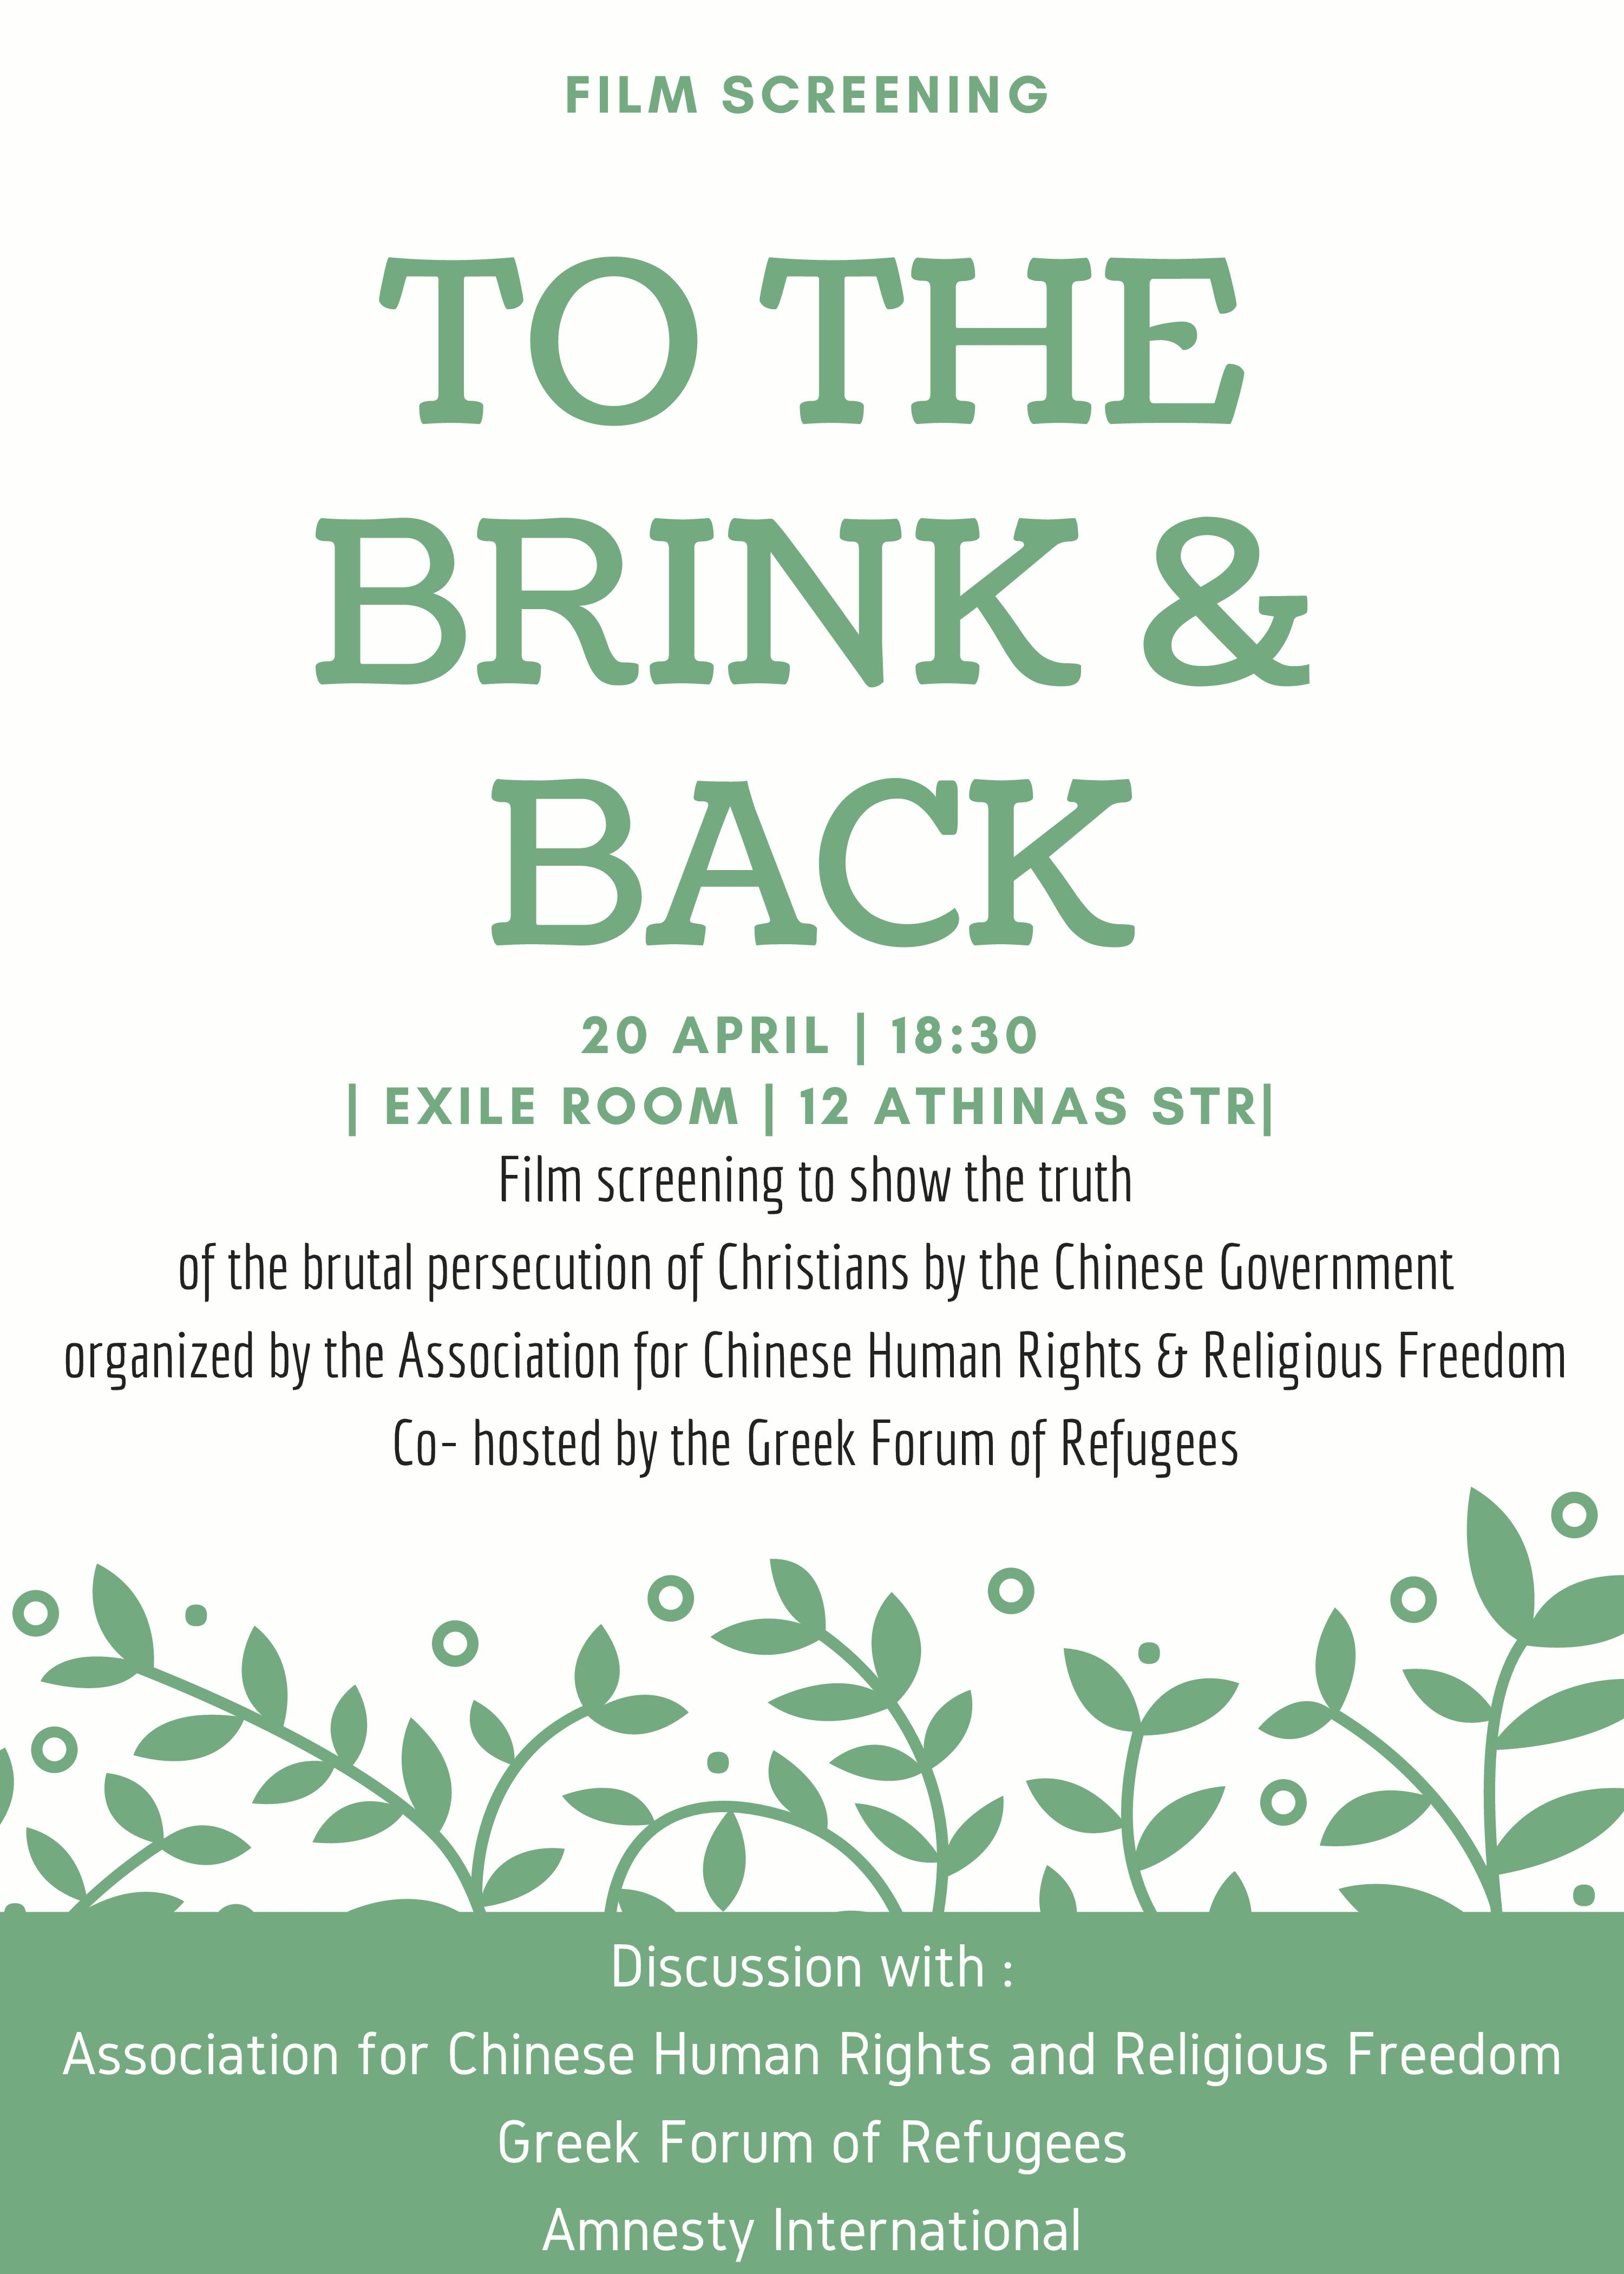 Invitation: To The Brink & Back